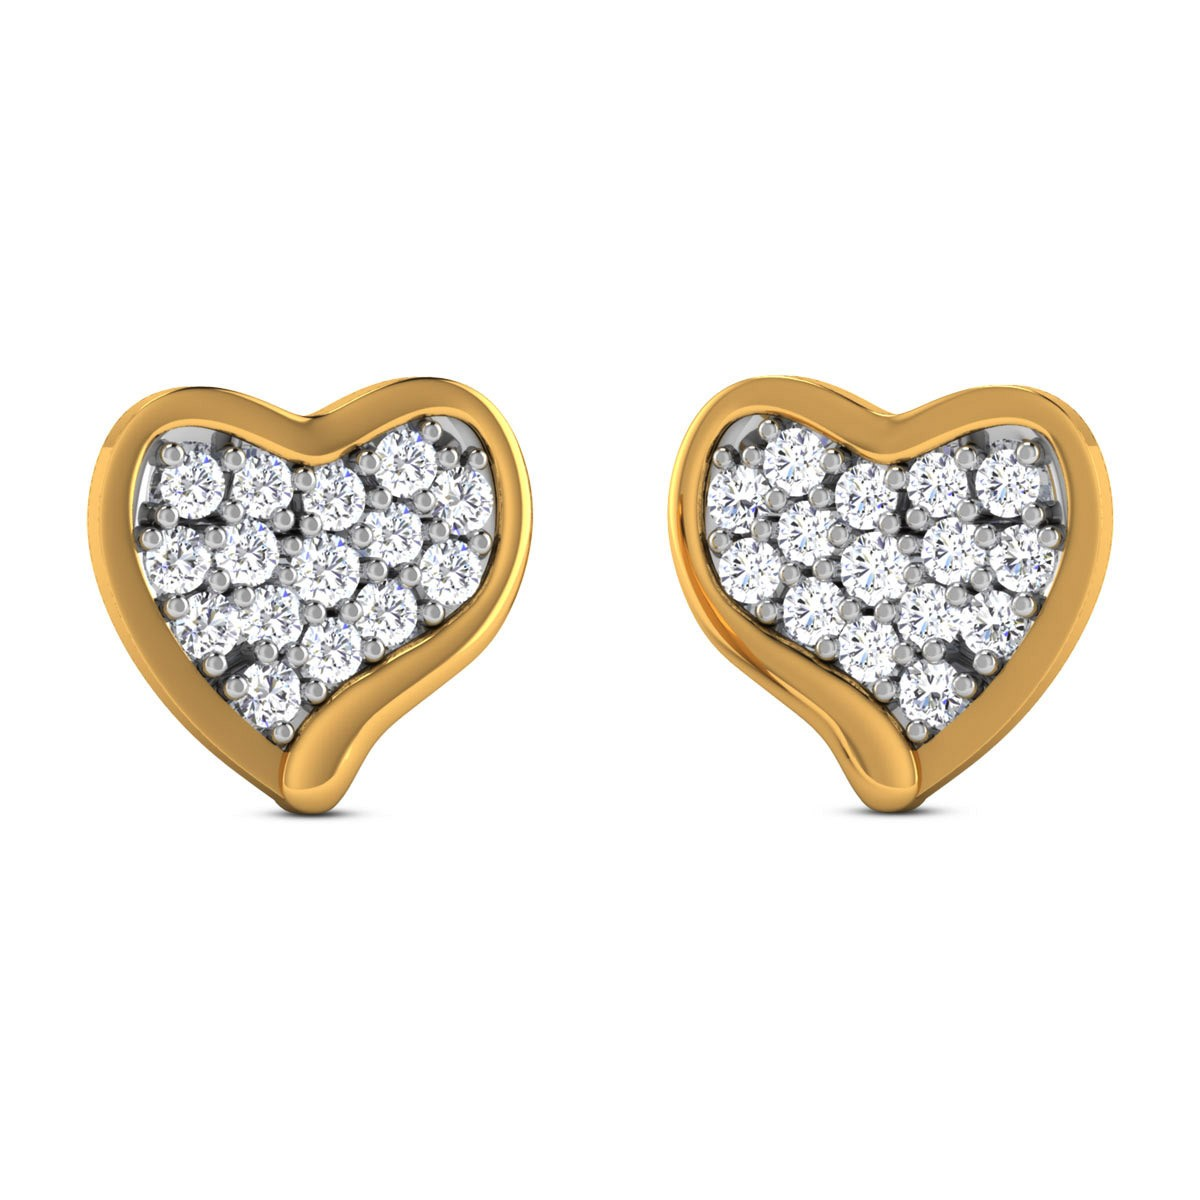 Foolan Diamond Heart Stud Earrings